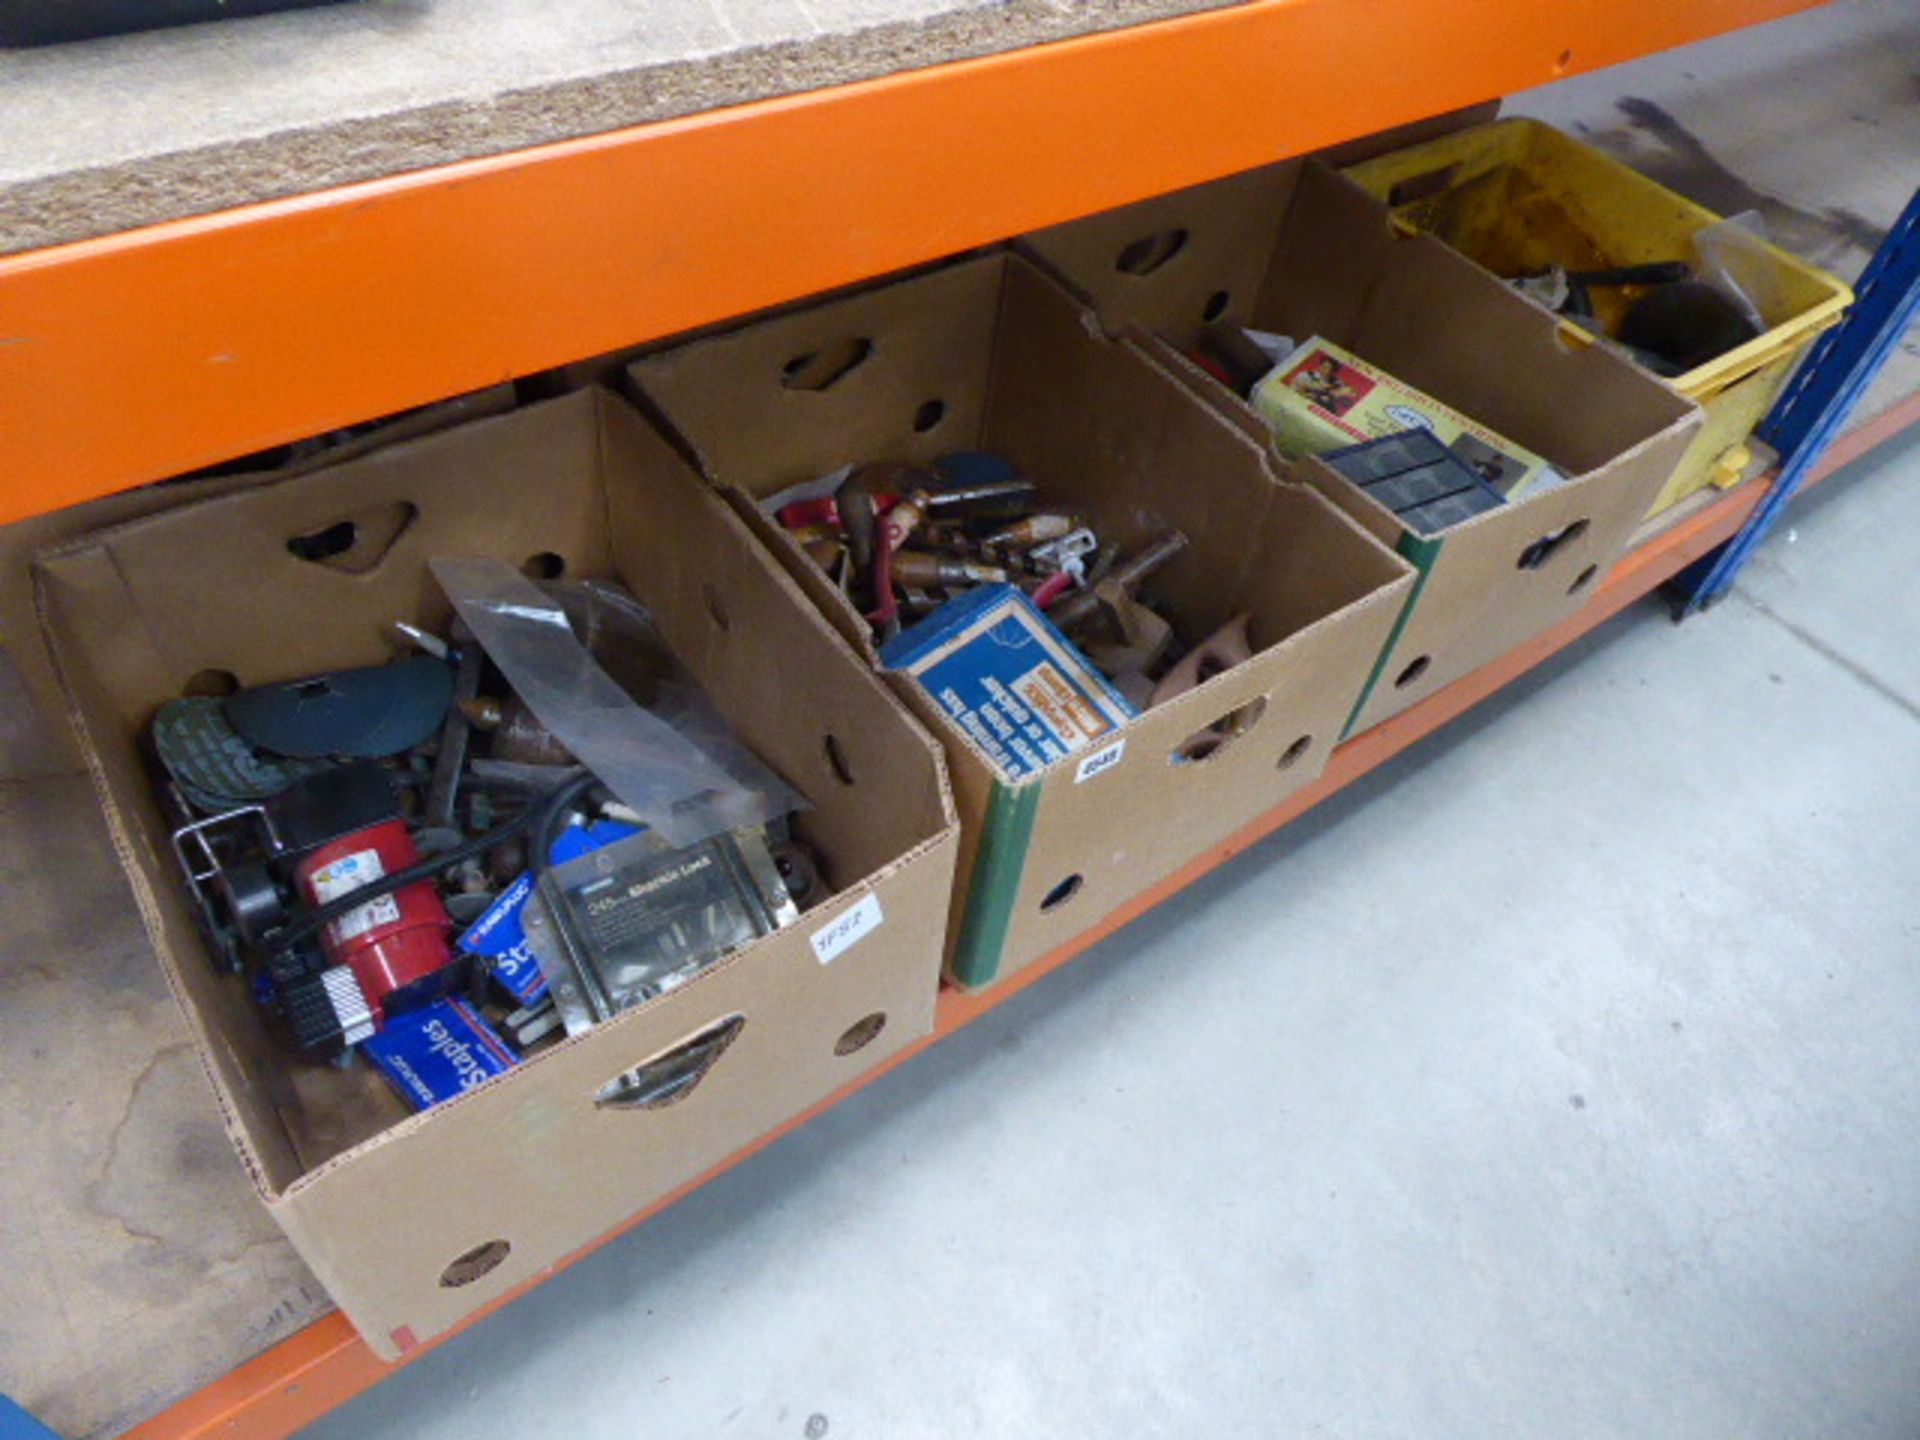 Lot 4540 - Half an underbay of assorted tools including drills, screw drivers, pumps, spanners, bits, etc